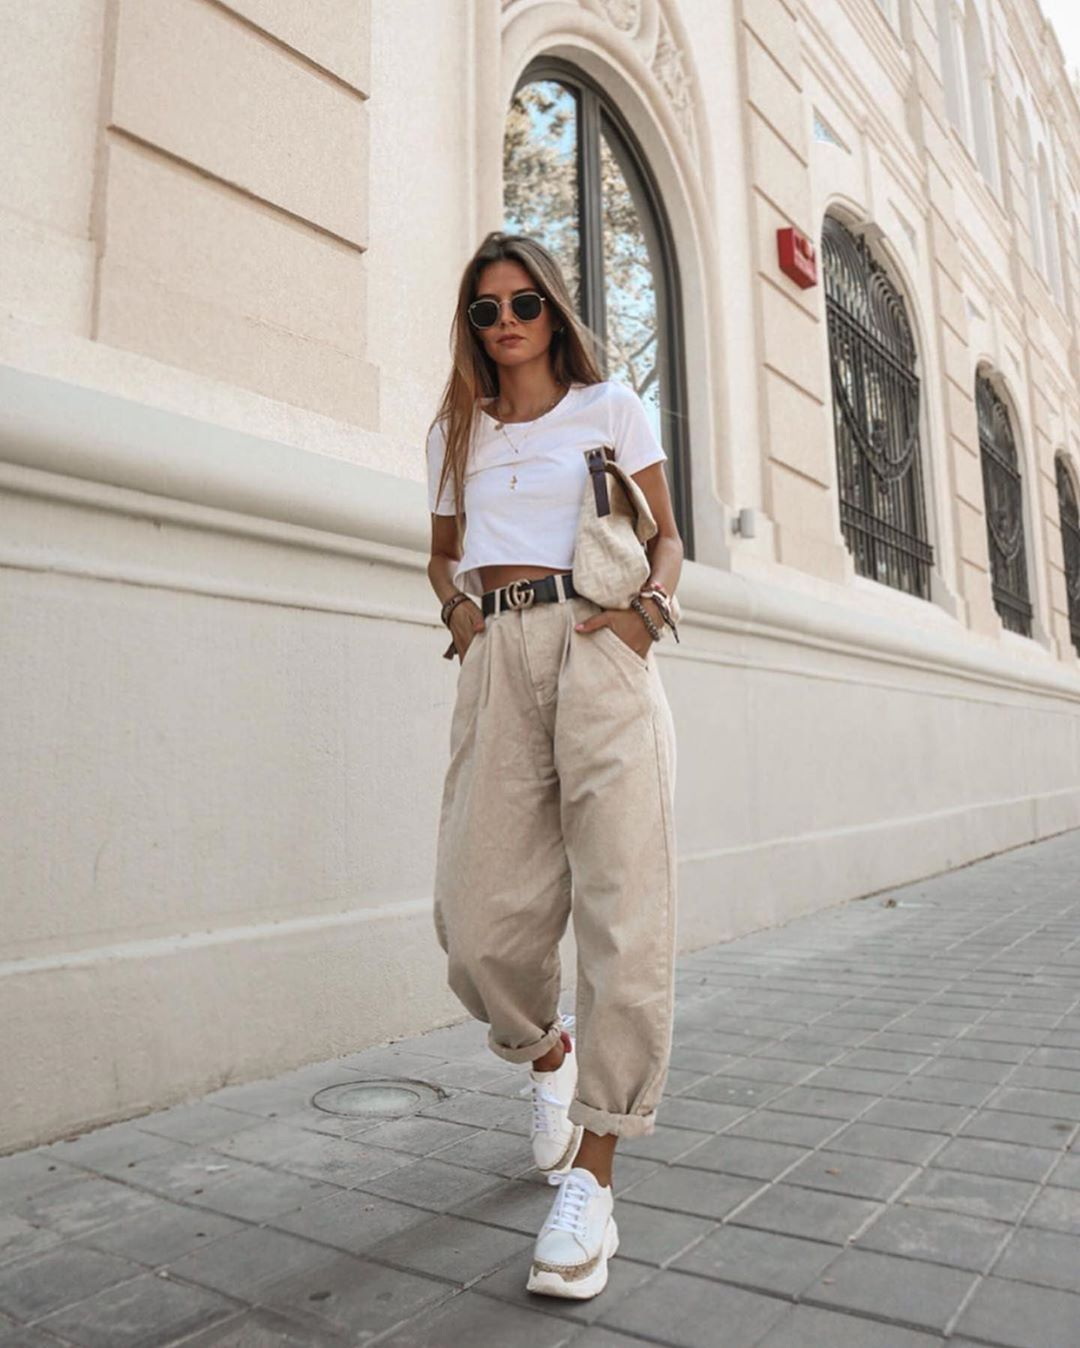 Slouchy Pants Yes Or No Marinamcerezo Zara Pants Cute Casual Outfits Fashion Inspo Outfits Fashion